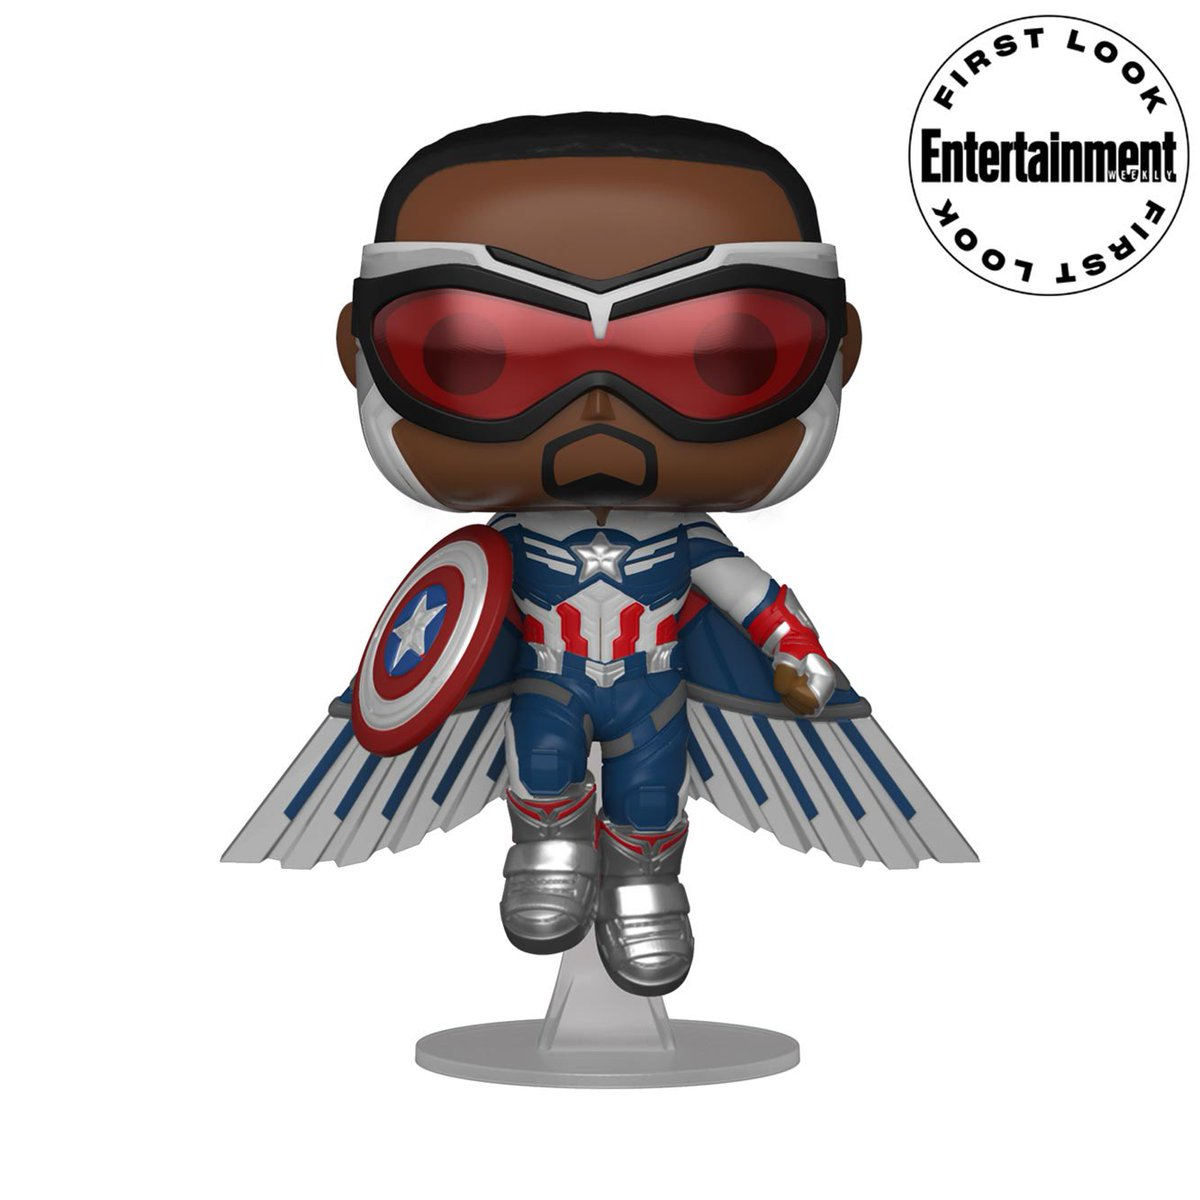 """The Falcon and the Winter Soldier News's tweet - """"First look at the Captain America Battle Funko Pop and higher quality image of Captain America Flying Funko Pop #thefalconandthewintersoldier #captainamerica #samwilson #captainamericaandthewintersoldier"""